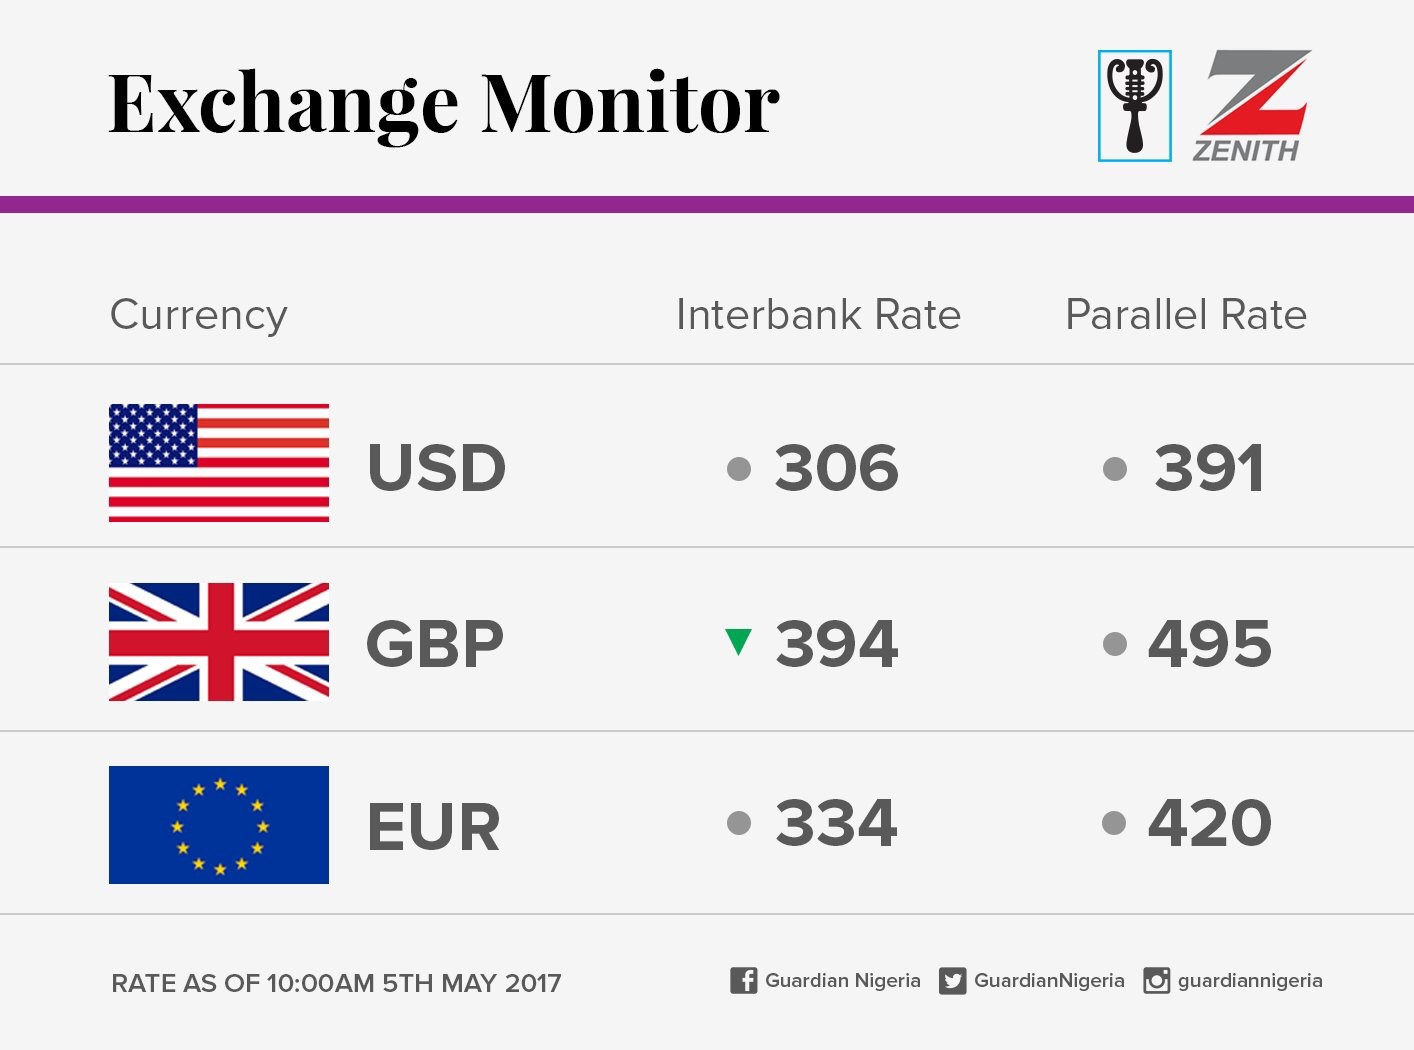 Exchange Rate For 5th May 2017